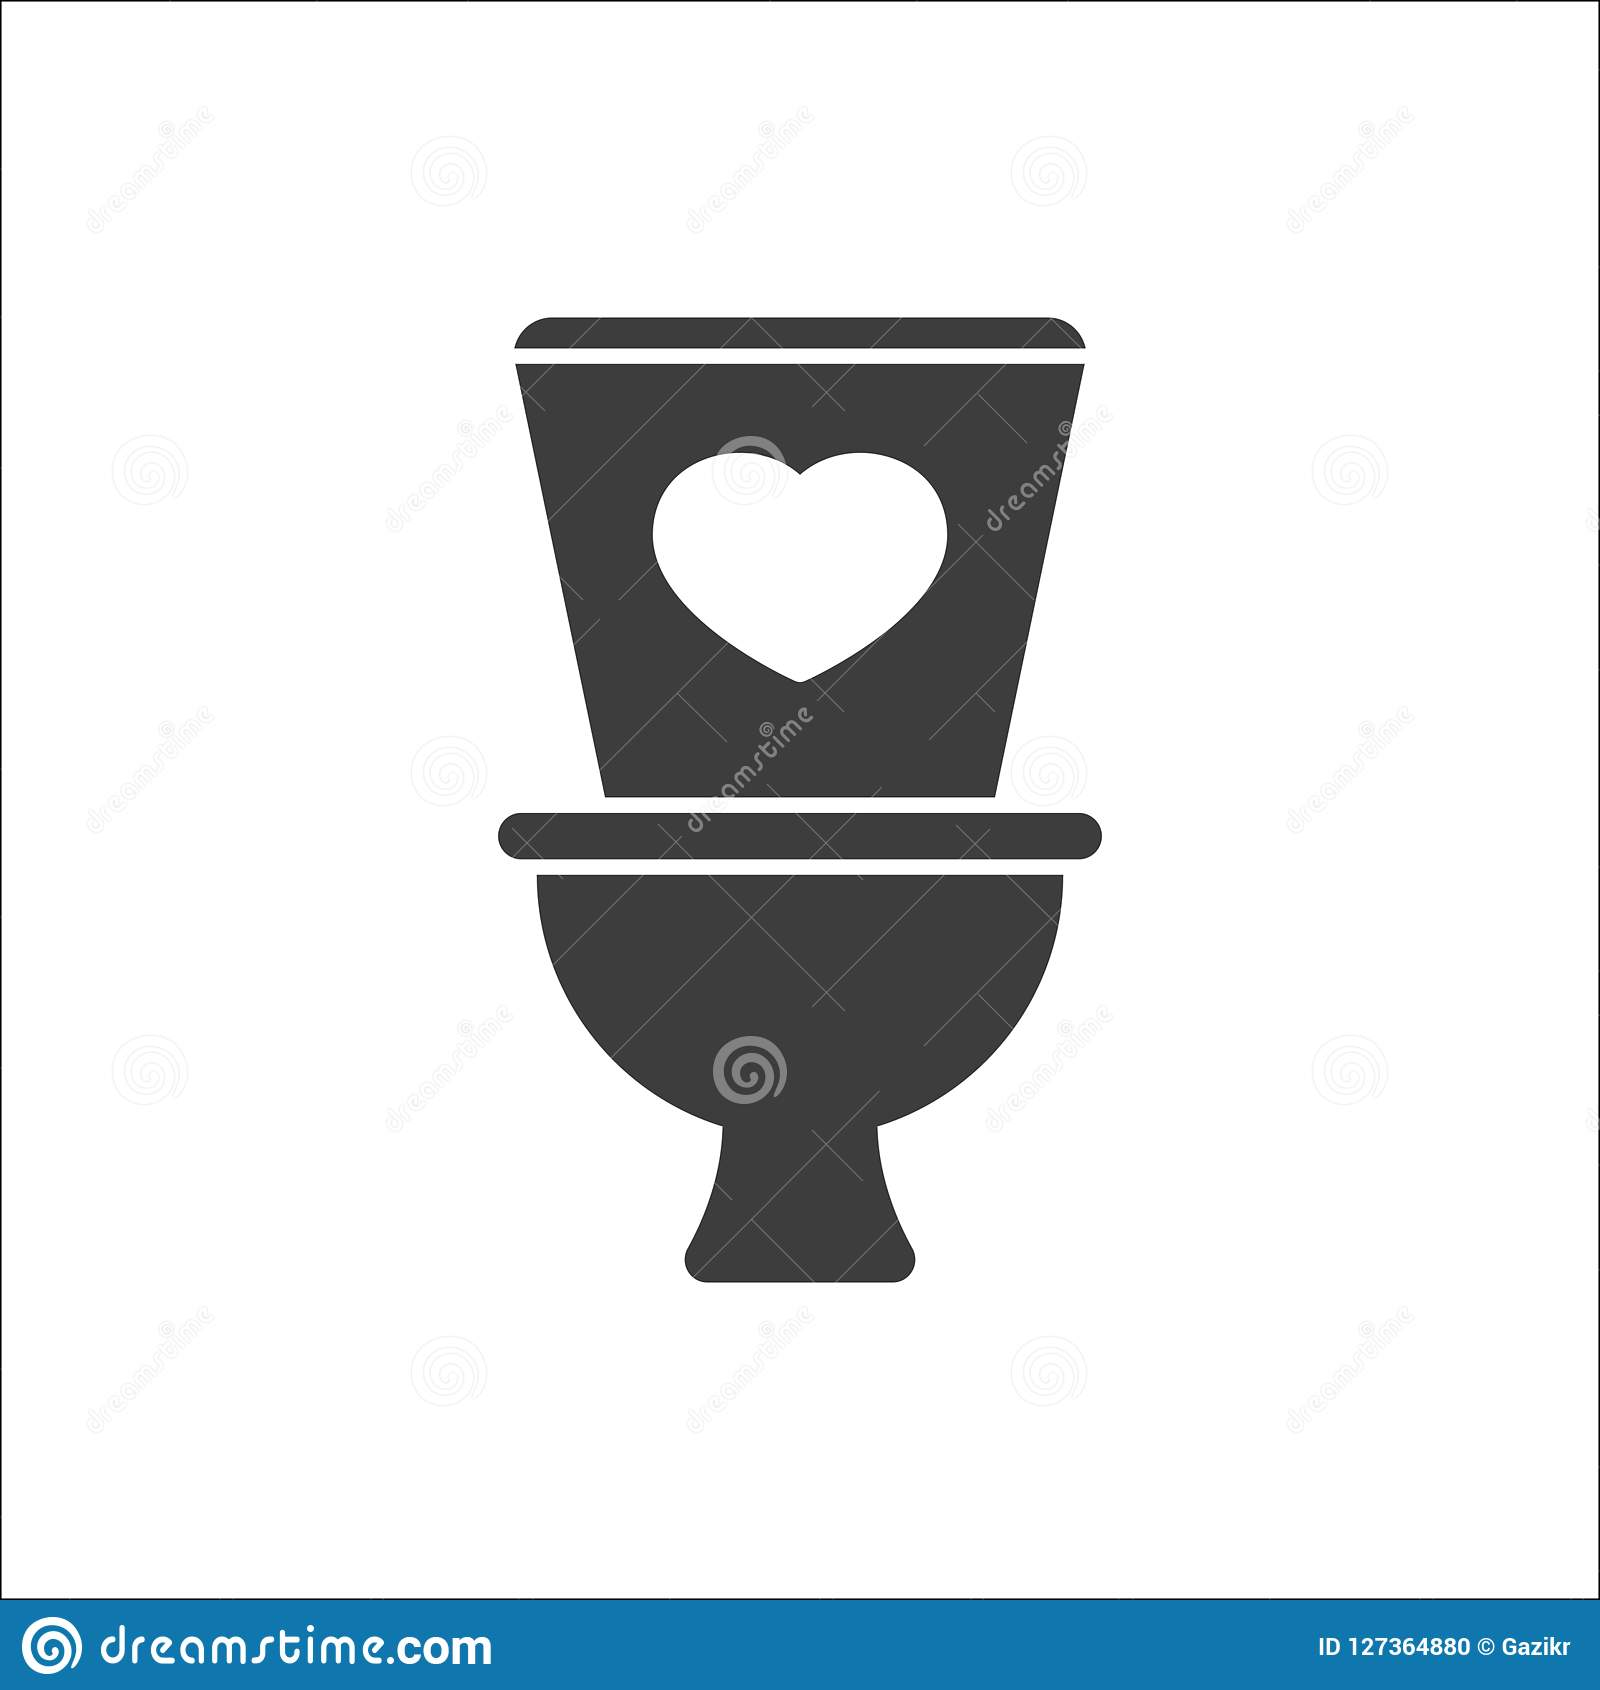 Toilet icon, Bathroom, restroom icon with heart sign. Toilet icon and favorite, like, love, care symbol